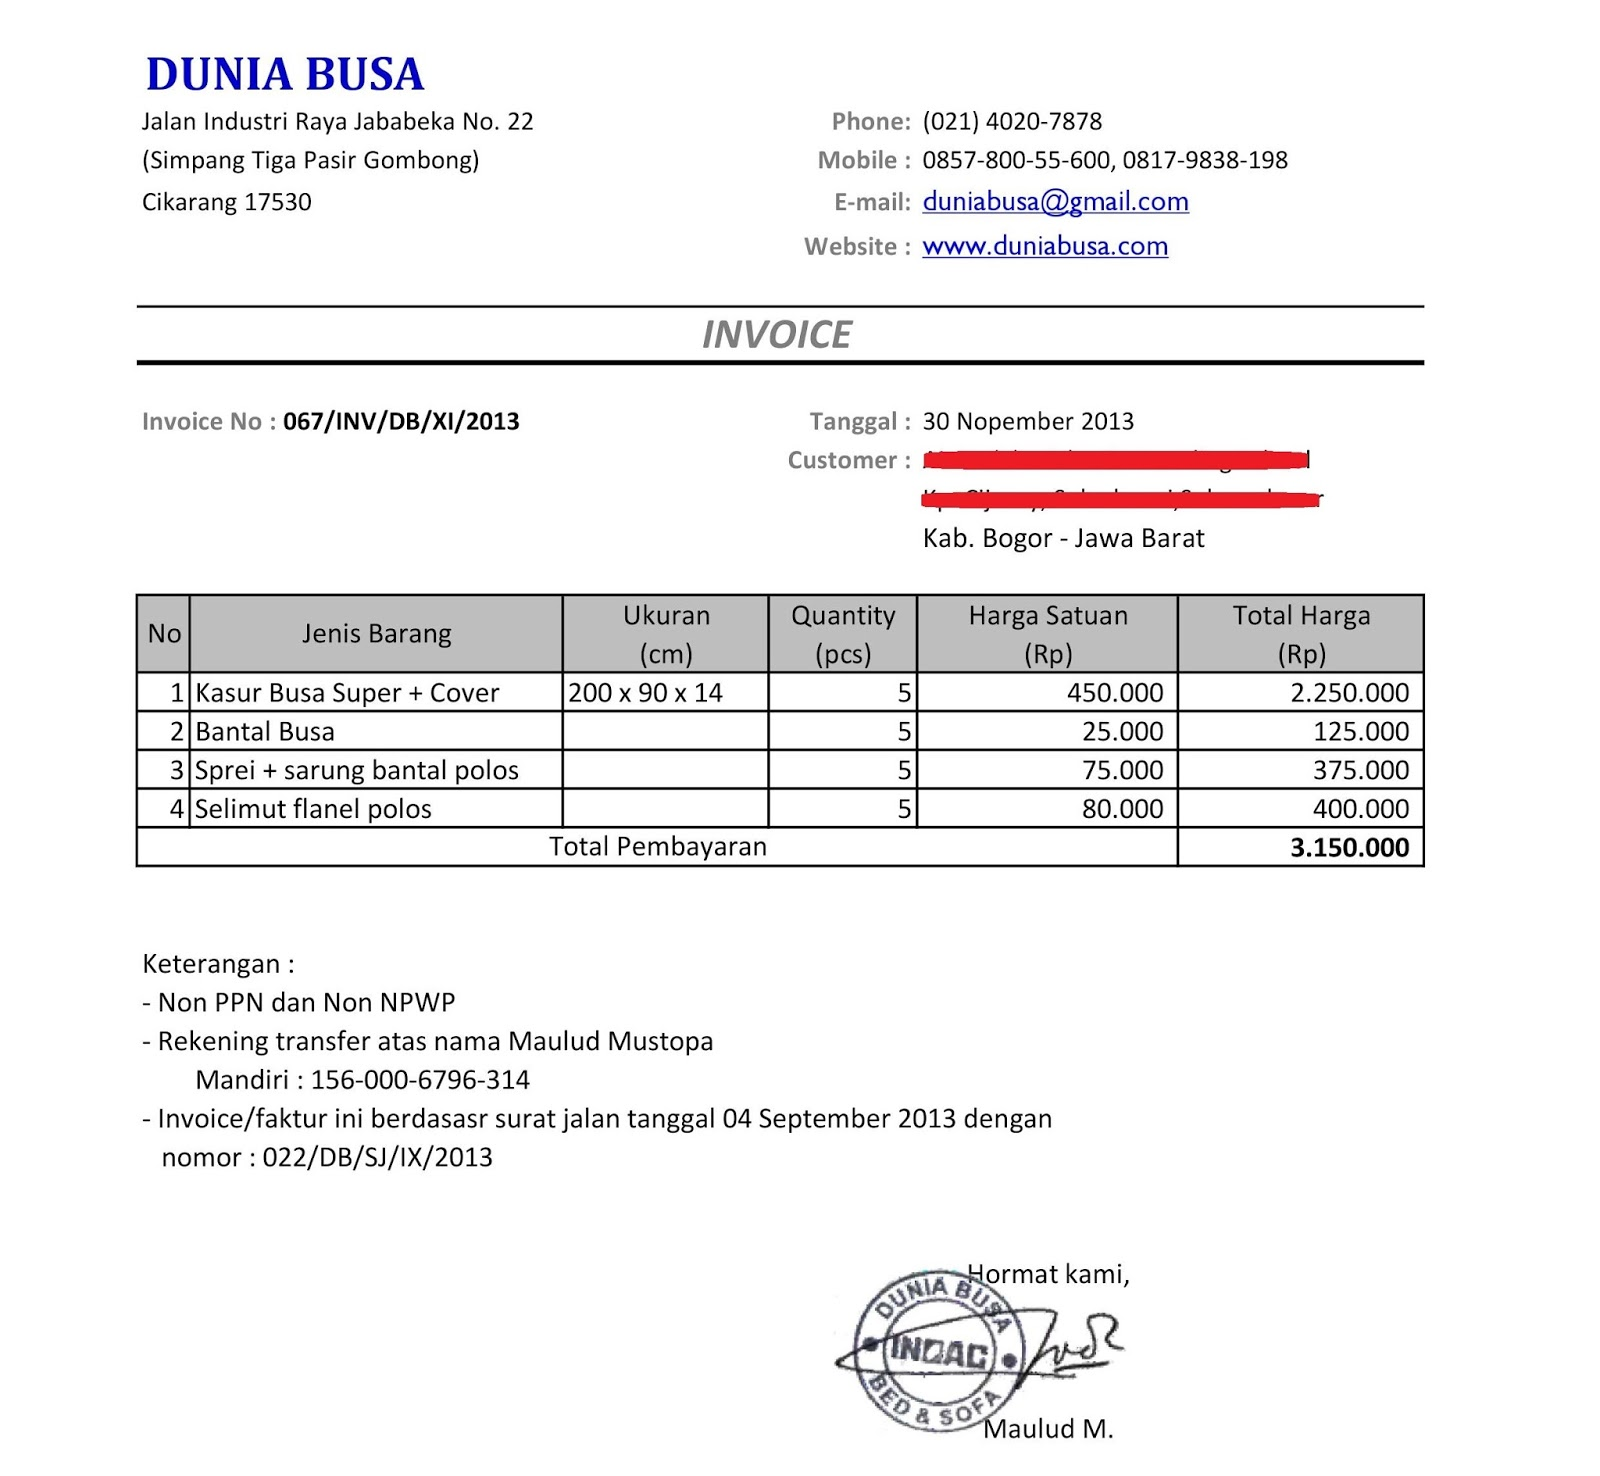 Centralasianshepherdus  Terrific Free Invoice Online  Create Invoice Online  Invoice Template  With Goodlooking Contoh Format Invoice Atau Surat Tagihan  Brankas Arsip  Free Invoice Online With Beauteous Payment Invoices Also Business Invoice Example In Addition  Mazda Invoice Price And  Ford Escape Invoice Price As Well As Gst Invoice Template Free Additionally Pos Invoice Software From Sklepco With Centralasianshepherdus  Goodlooking Free Invoice Online  Create Invoice Online  Invoice Template  With Beauteous Contoh Format Invoice Atau Surat Tagihan  Brankas Arsip  Free Invoice Online And Terrific Payment Invoices Also Business Invoice Example In Addition  Mazda Invoice Price From Sklepco